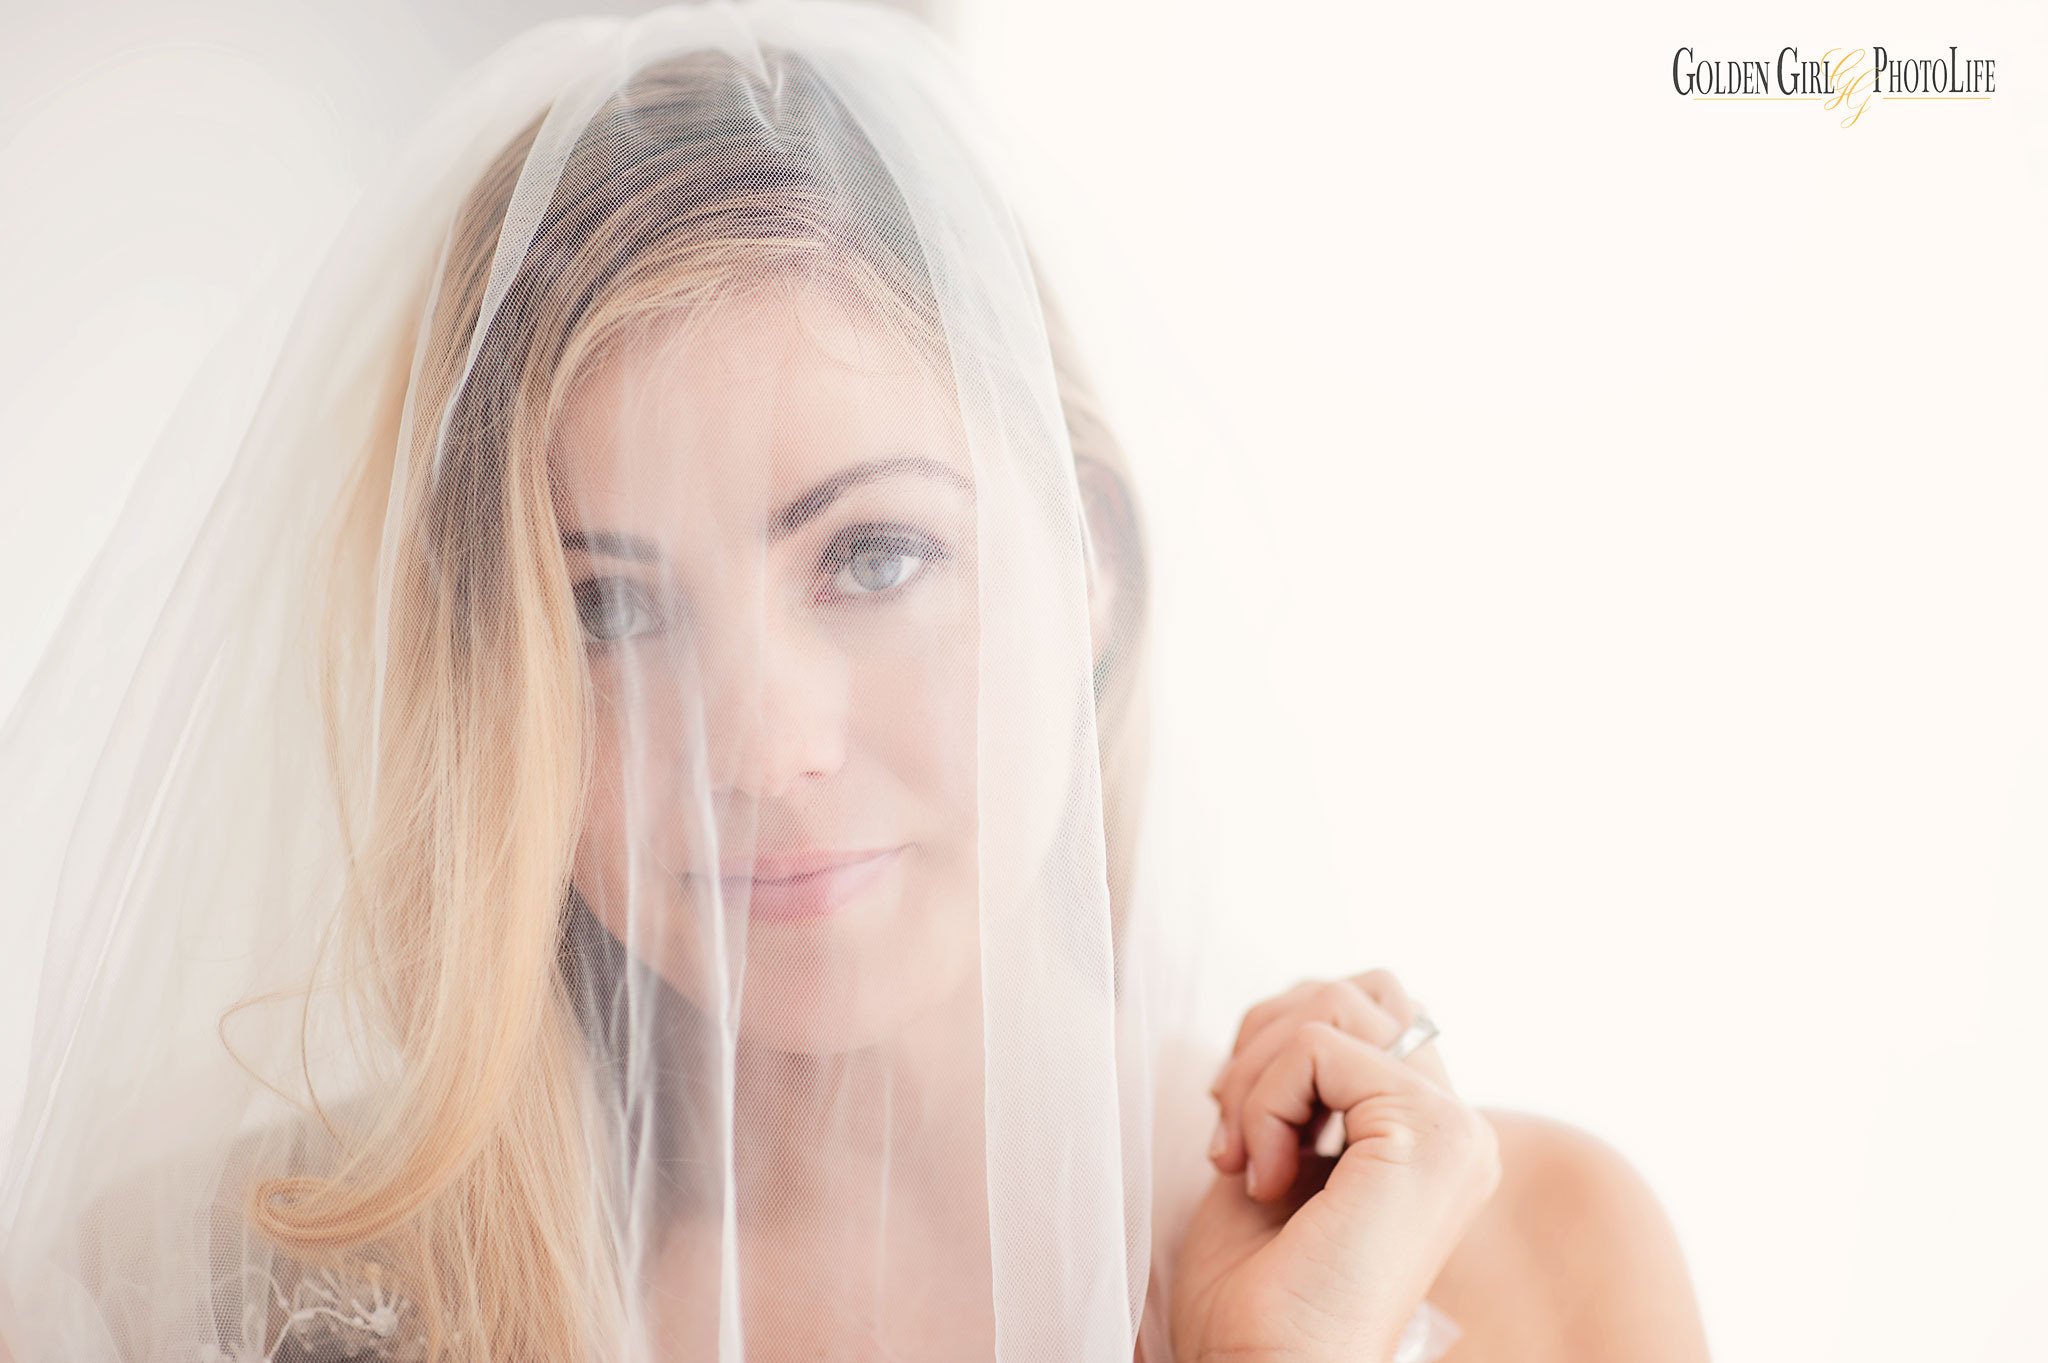 Intimate personalized Bridal Sessions for our Golden Girl clientele